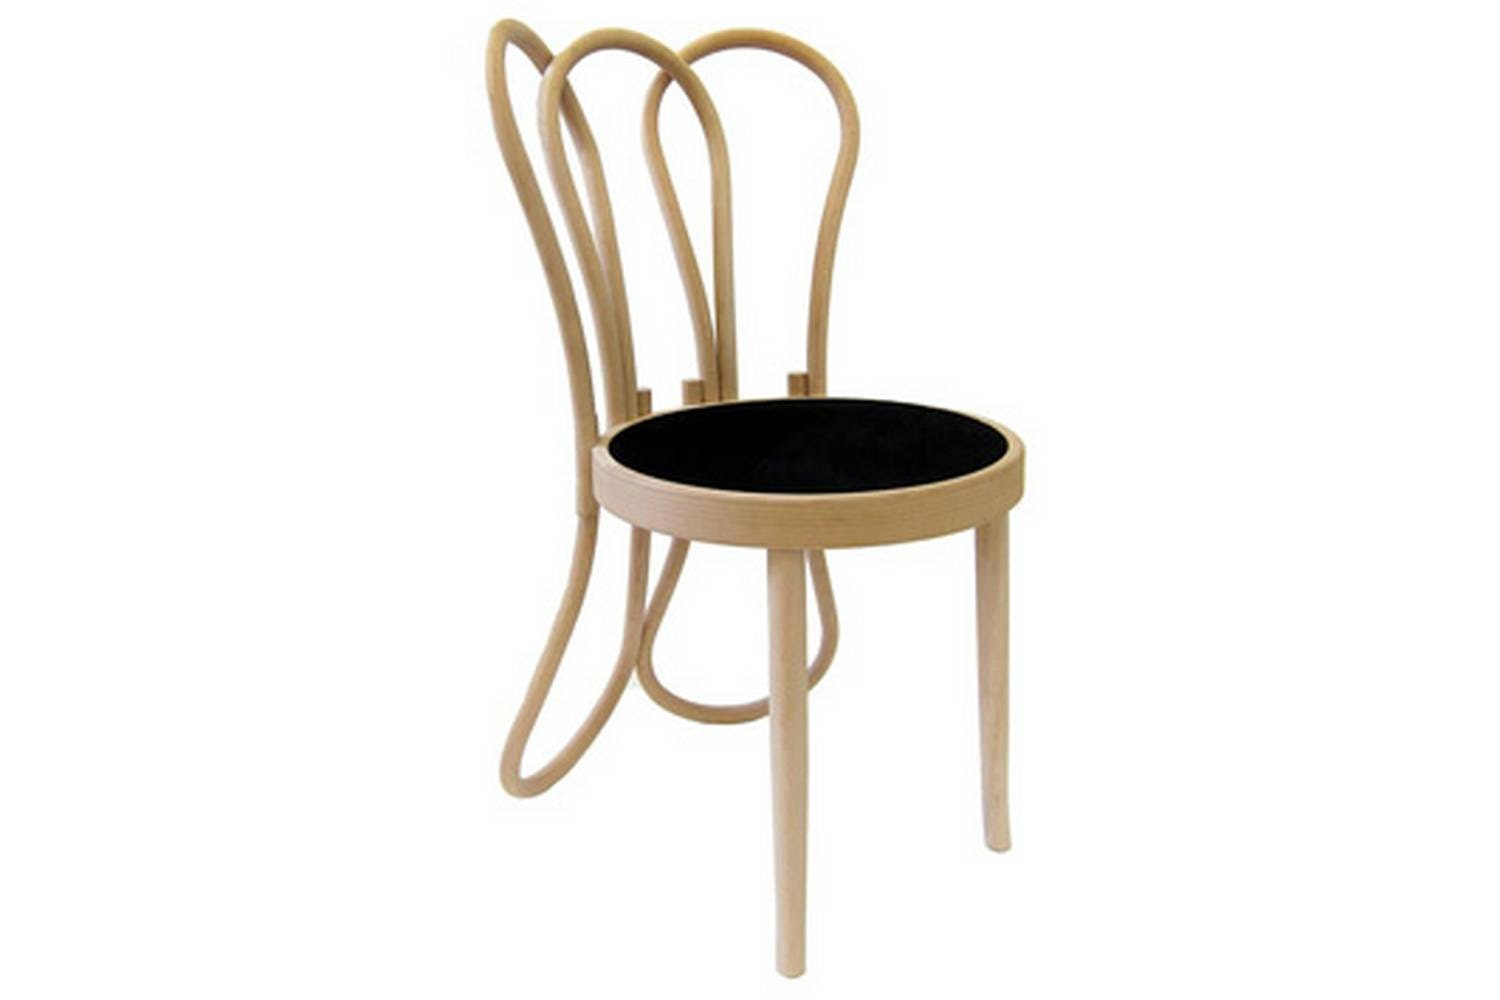 Post Mundus Chair by Martino Gamper for Wiener GTV Design